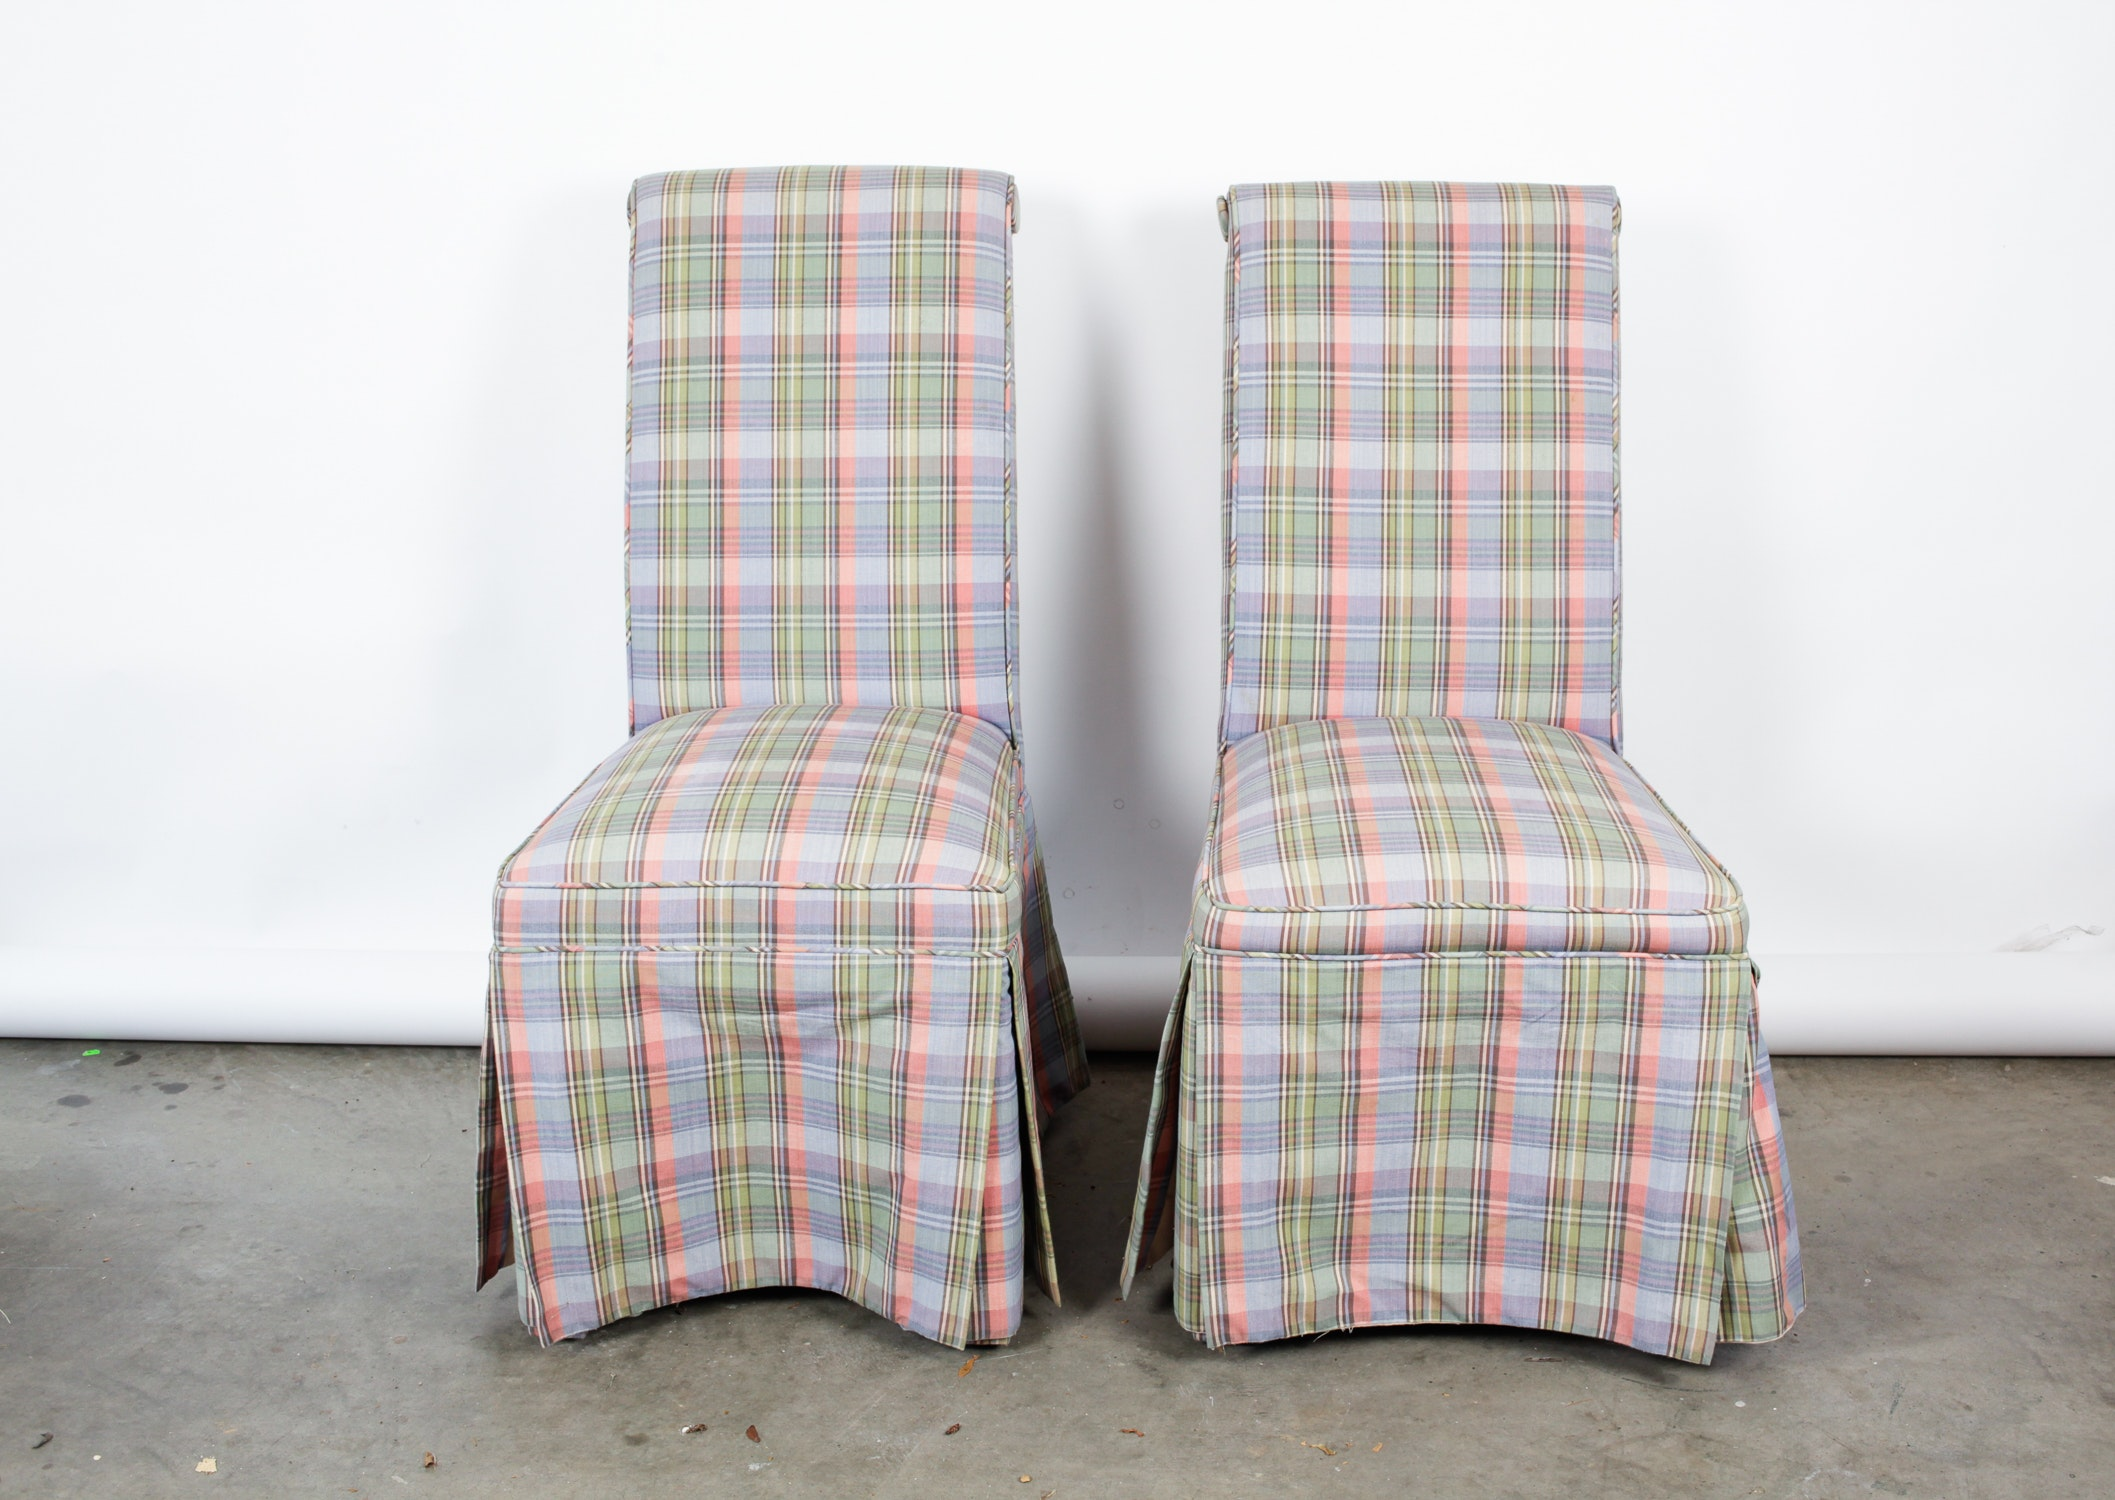 Slipcovers For Queen Anne Chairs Pair of Side Chairs : EBTH